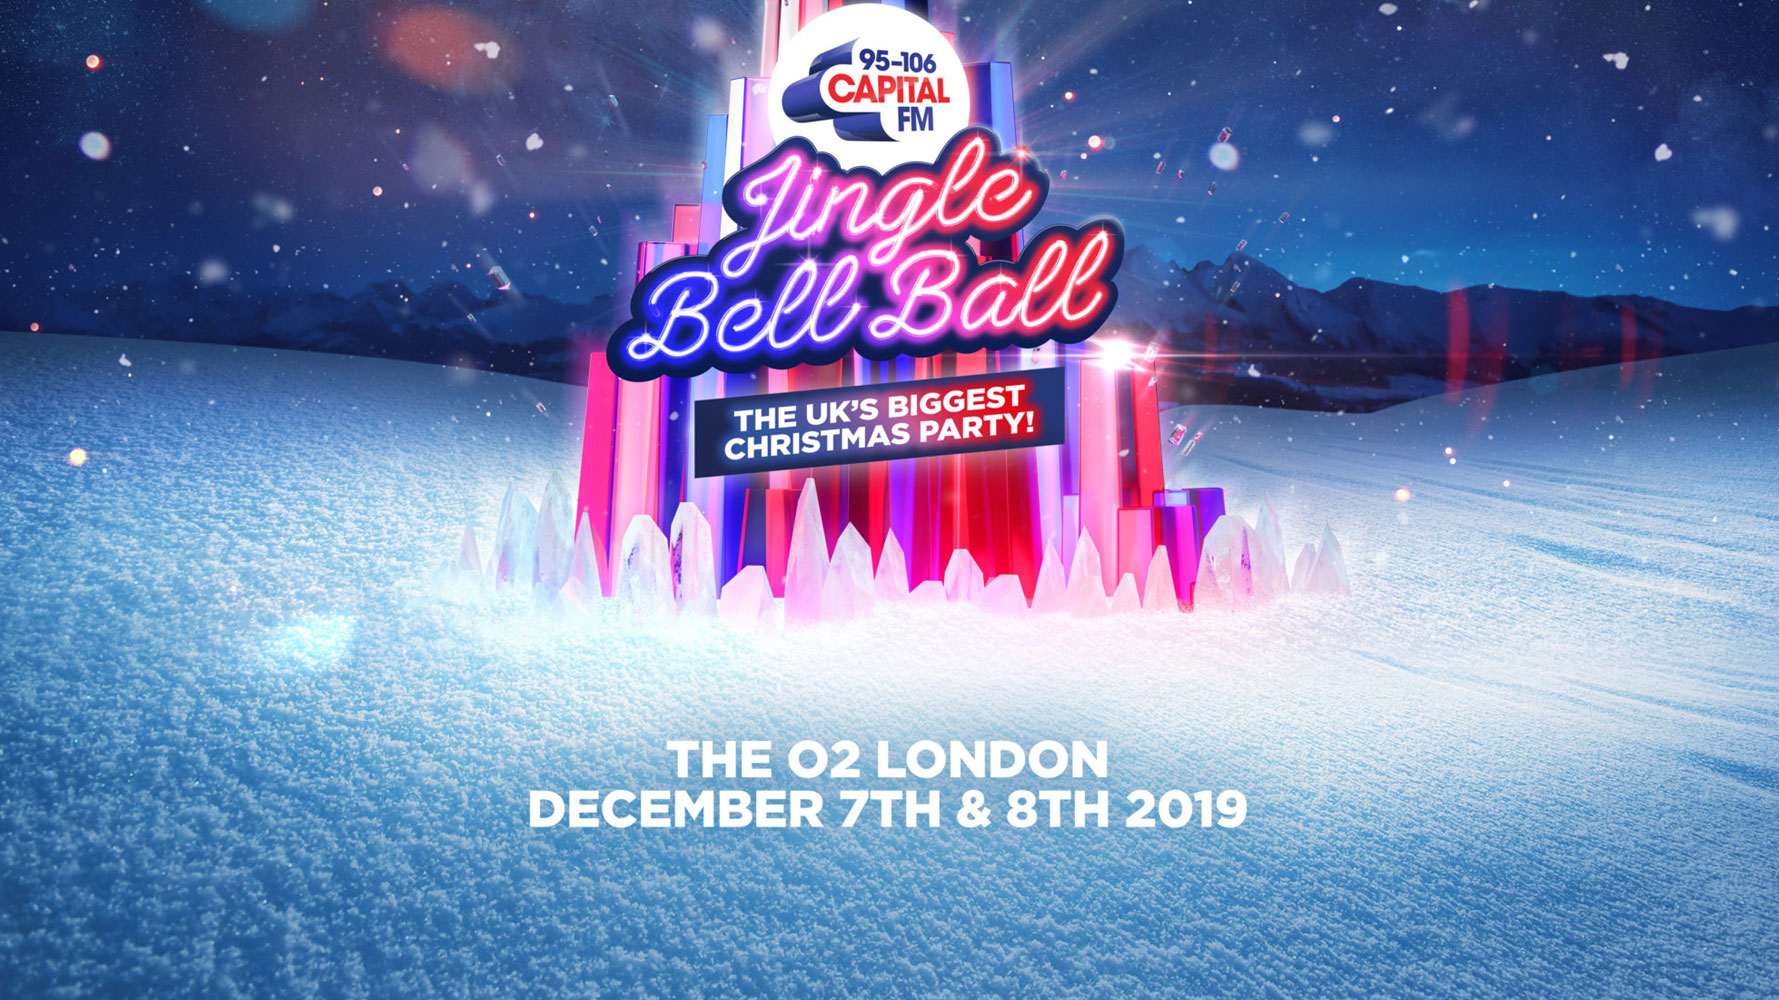 Capital's Jingle Bell Ball 2019